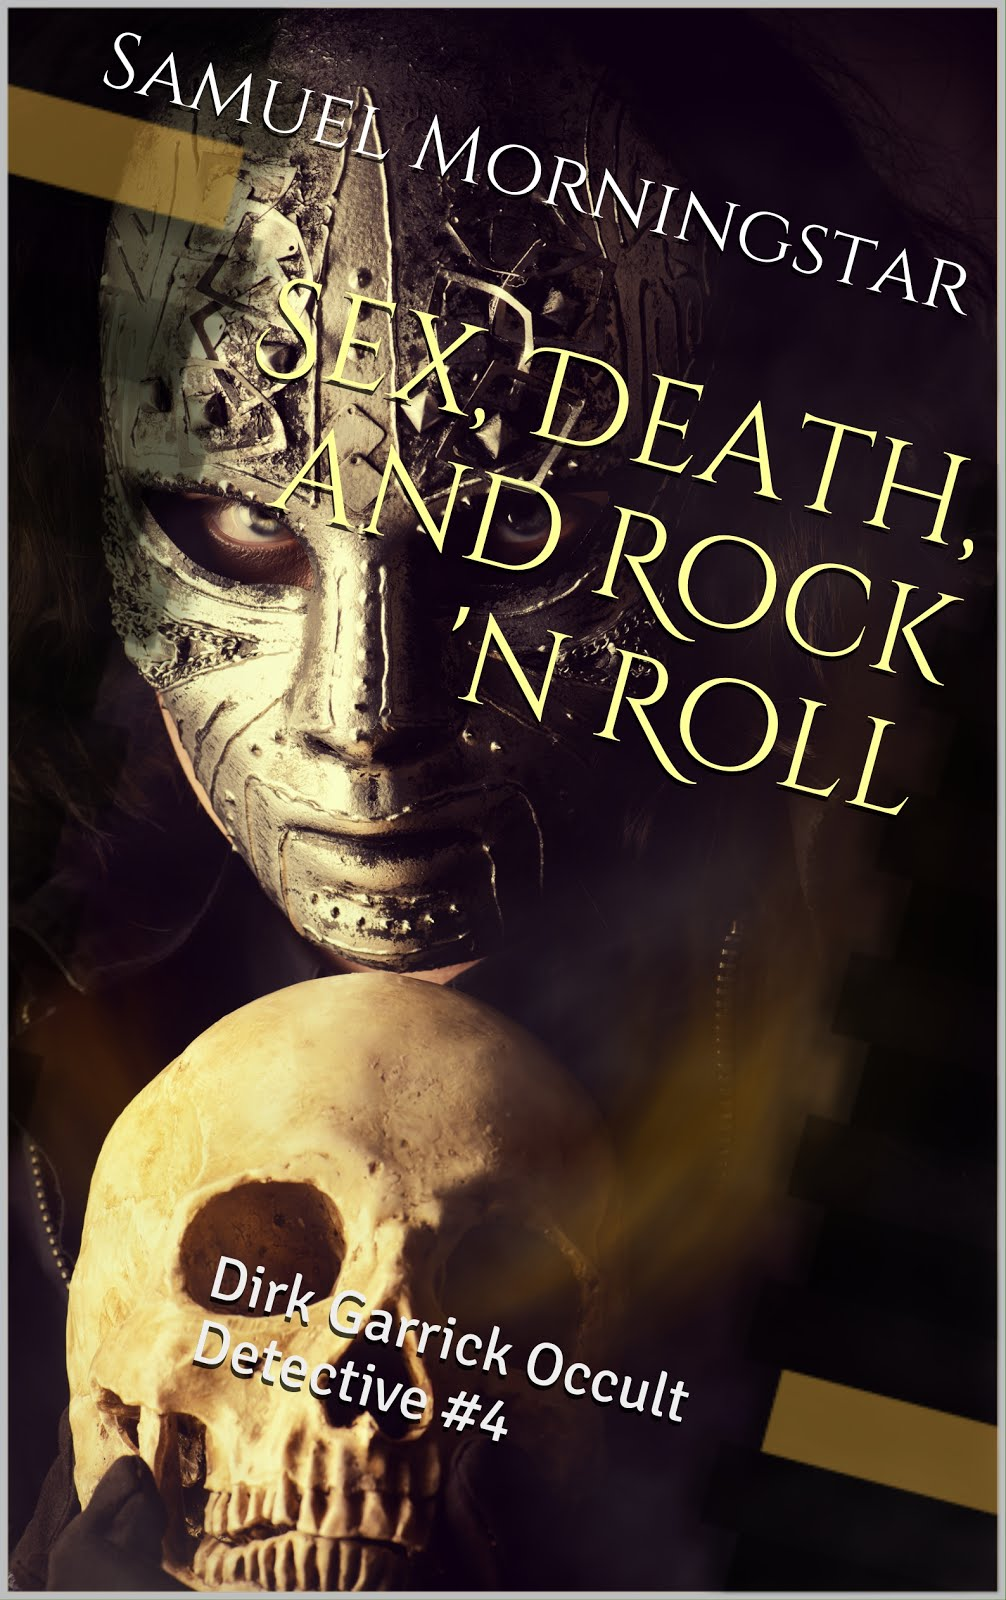 Sex, Death, and Rock 'n Roll / Dirk Garrick Occult Detective